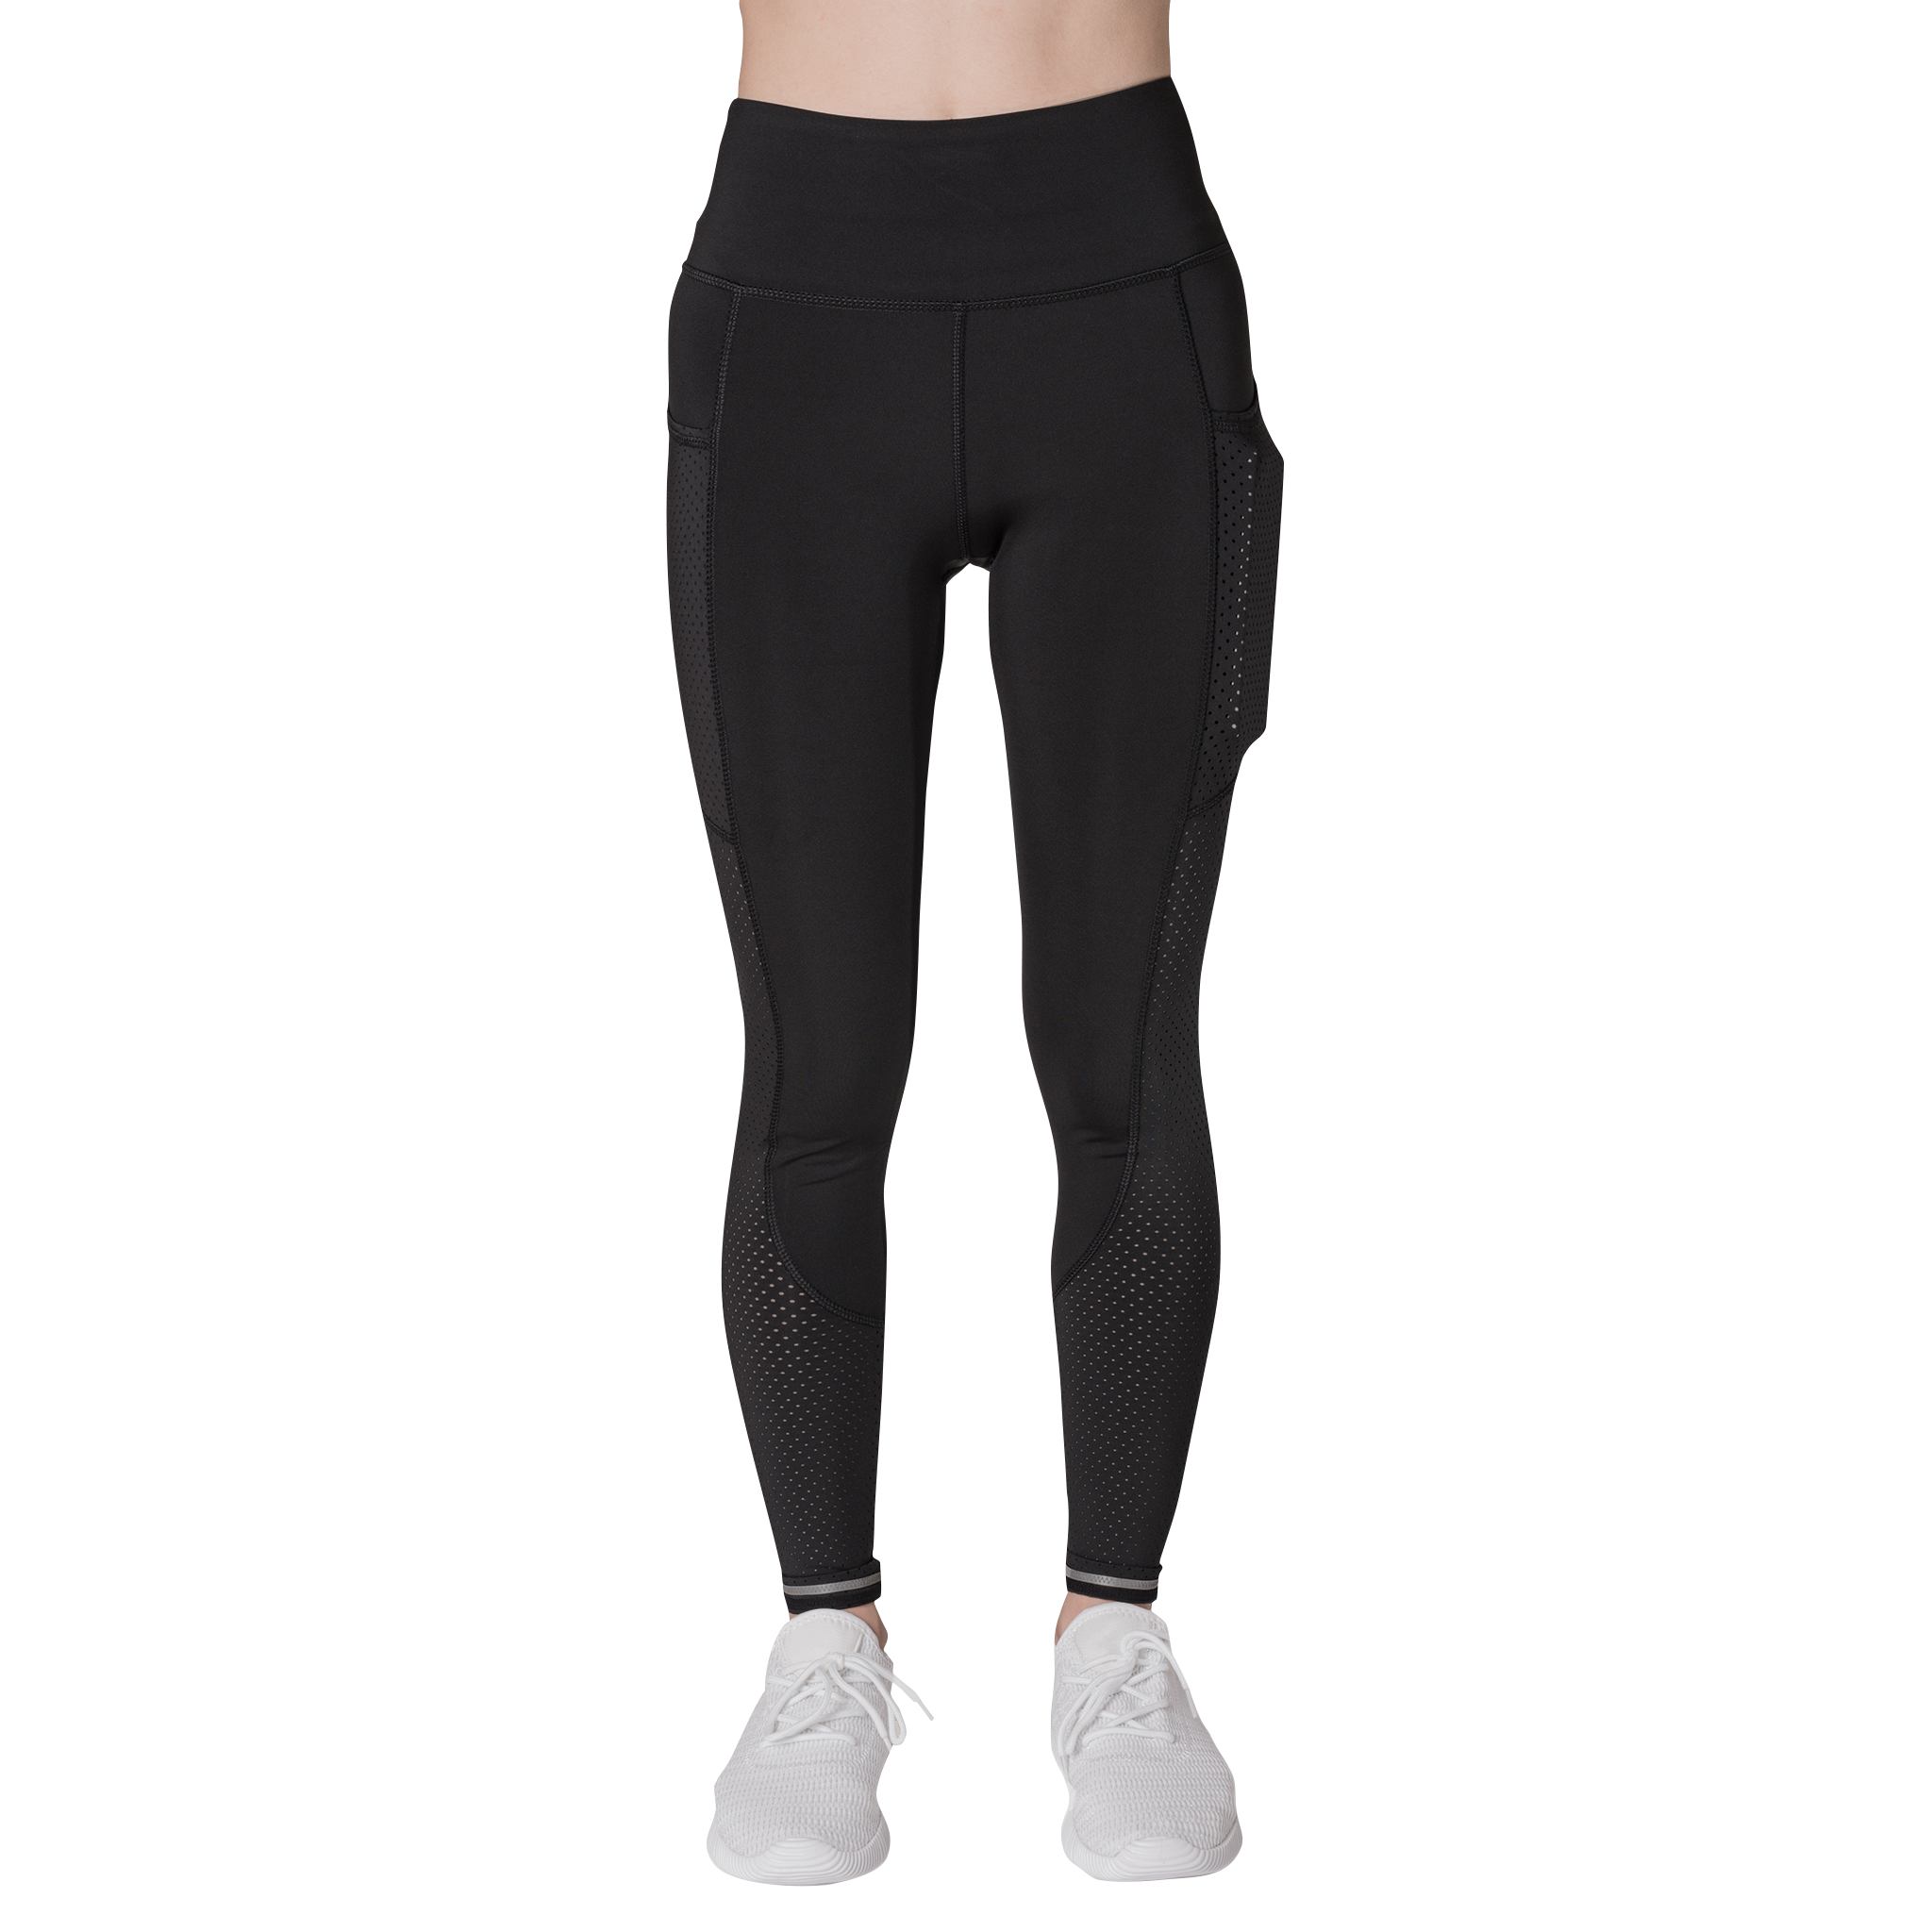 Front view Classic Leisurewear Black with Elasticized waistband Side pockets right, left and back